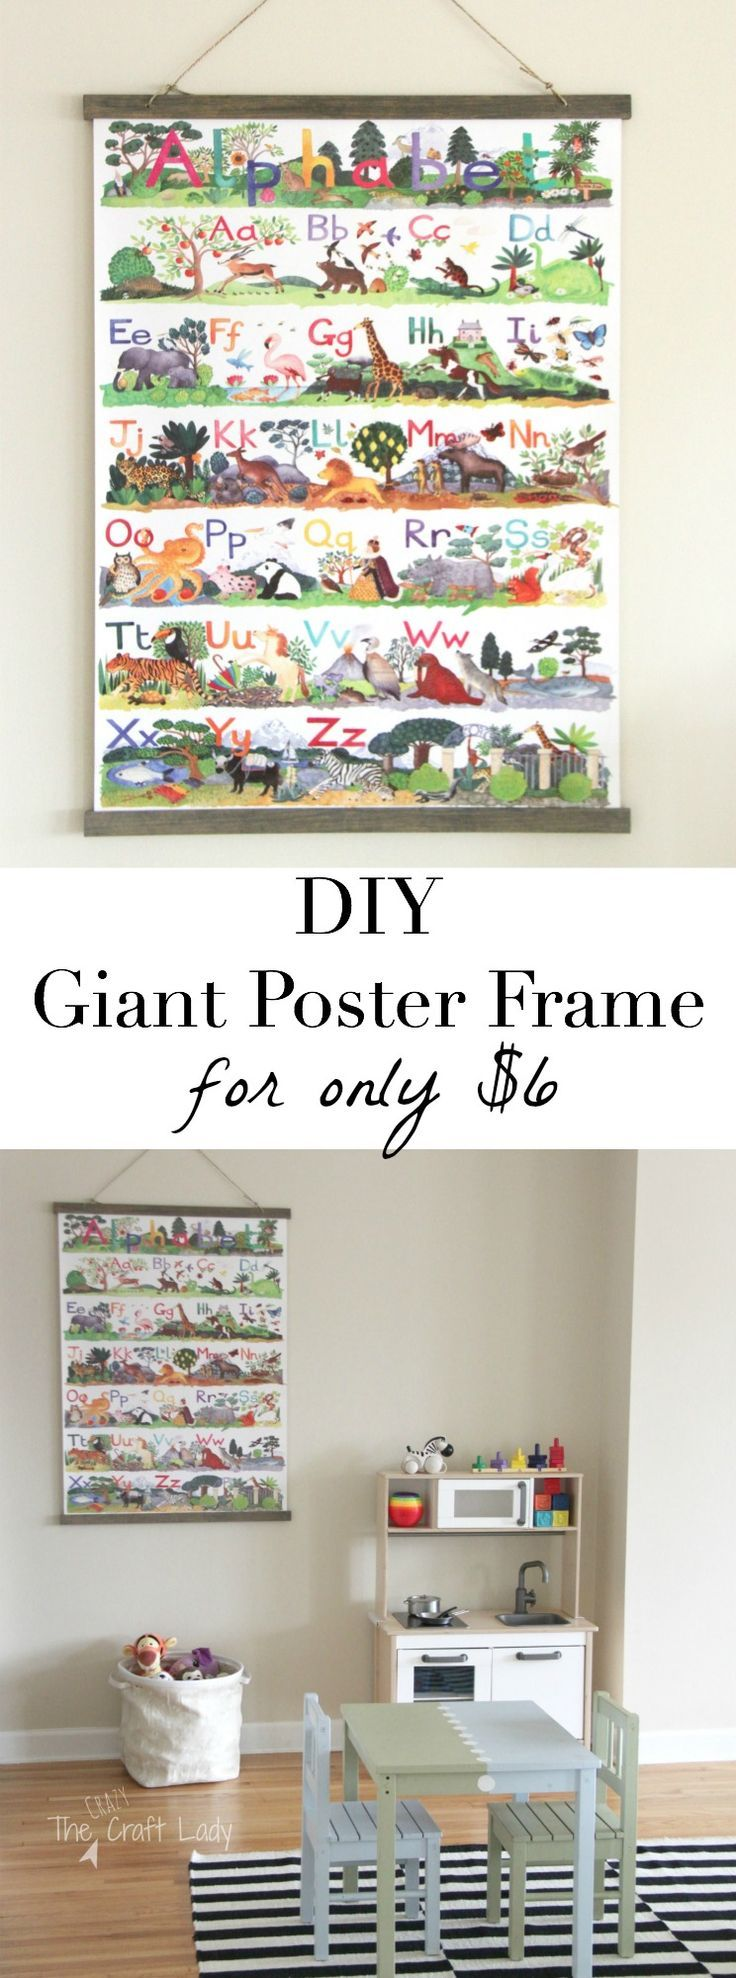 How to make a large poster frame for only $6!  This is a super-easy tutorial for making a custom frame... with an amazing top to keep your poster from ripping! Love this!